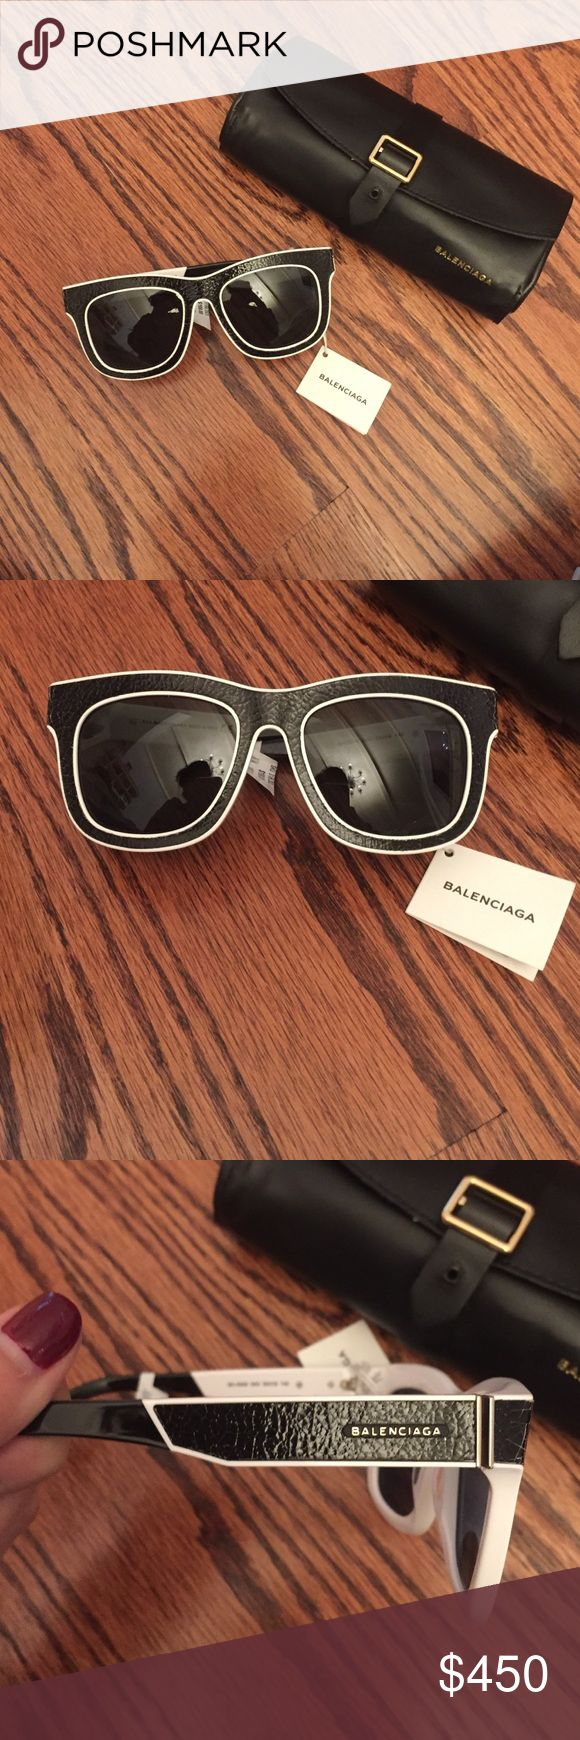 Authentic Balenciaga Sunglasses 100% Authentic NWT Black Cracked Leather Balenciaga Sunglasses 2016 Balenciaga Accessories Sunglasses